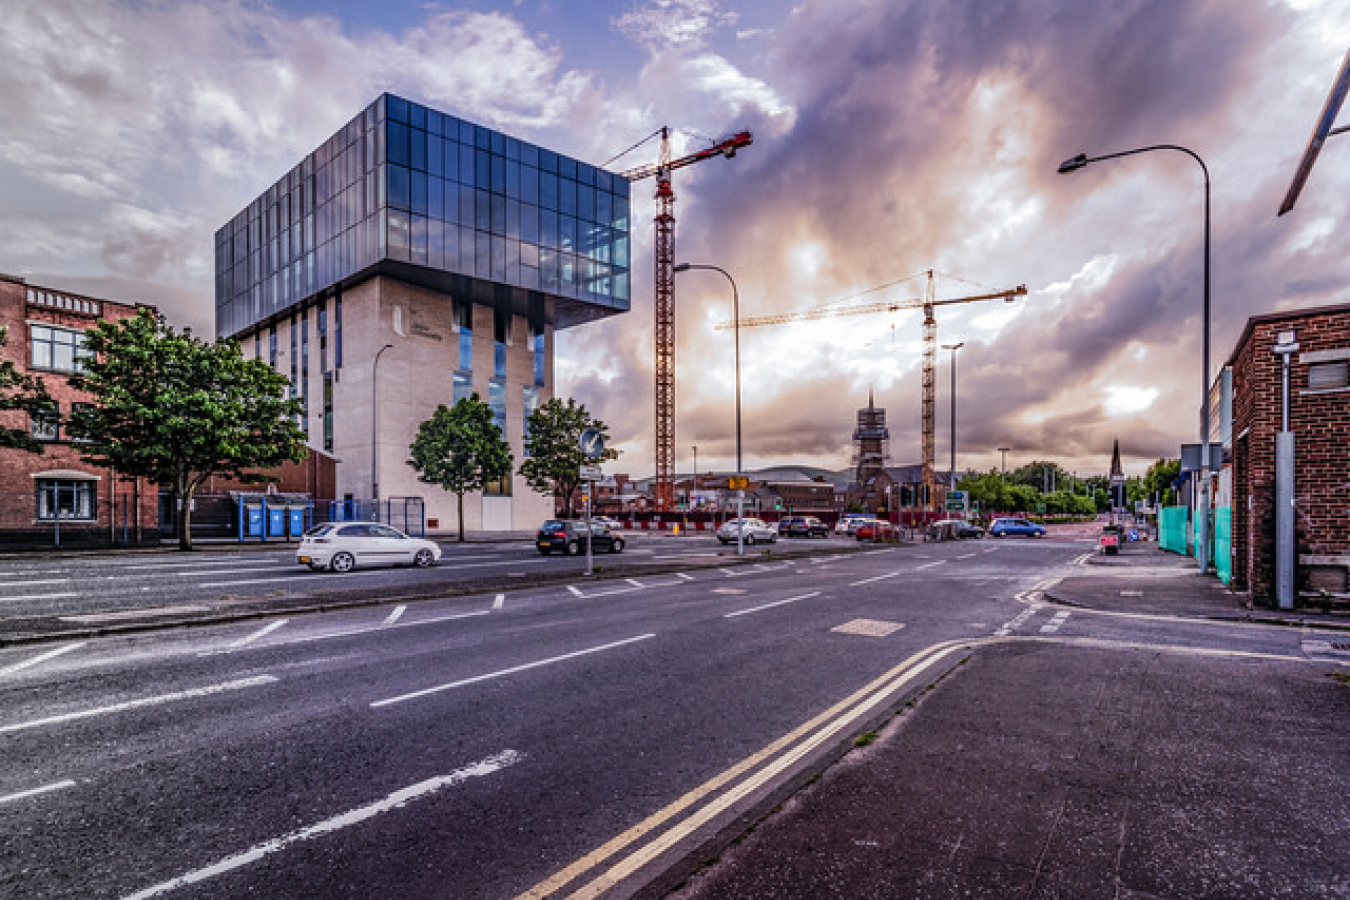 ULTRA WIDE ANGLE VIEW OF THE UNIVERSITY OF ULSTER BELFAST CAMPUS [ YORK STREET ]-125076